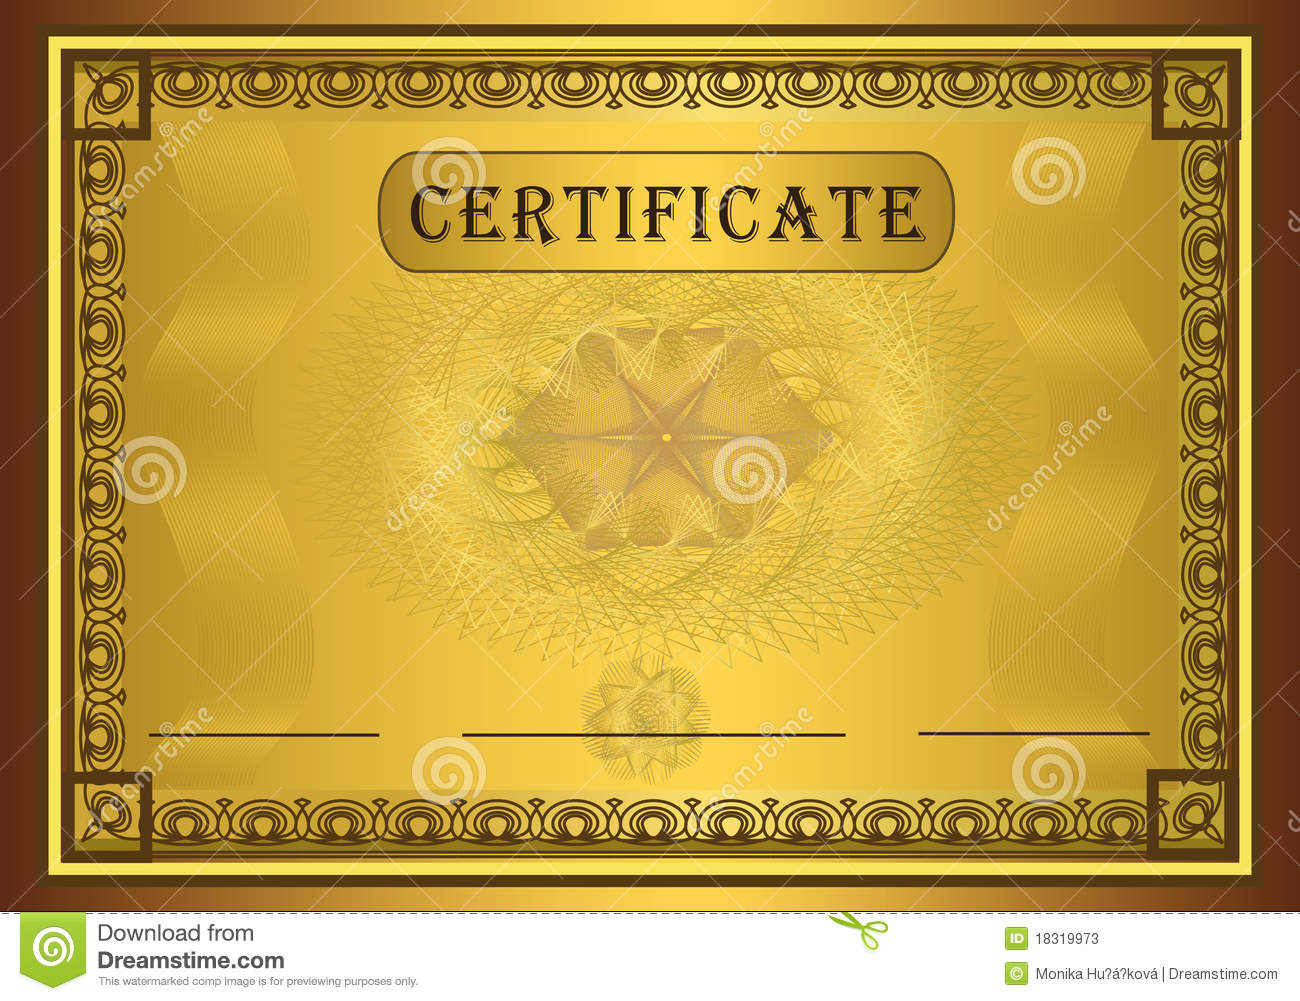 Gold certificate | Gold, Text fonts and Fonts